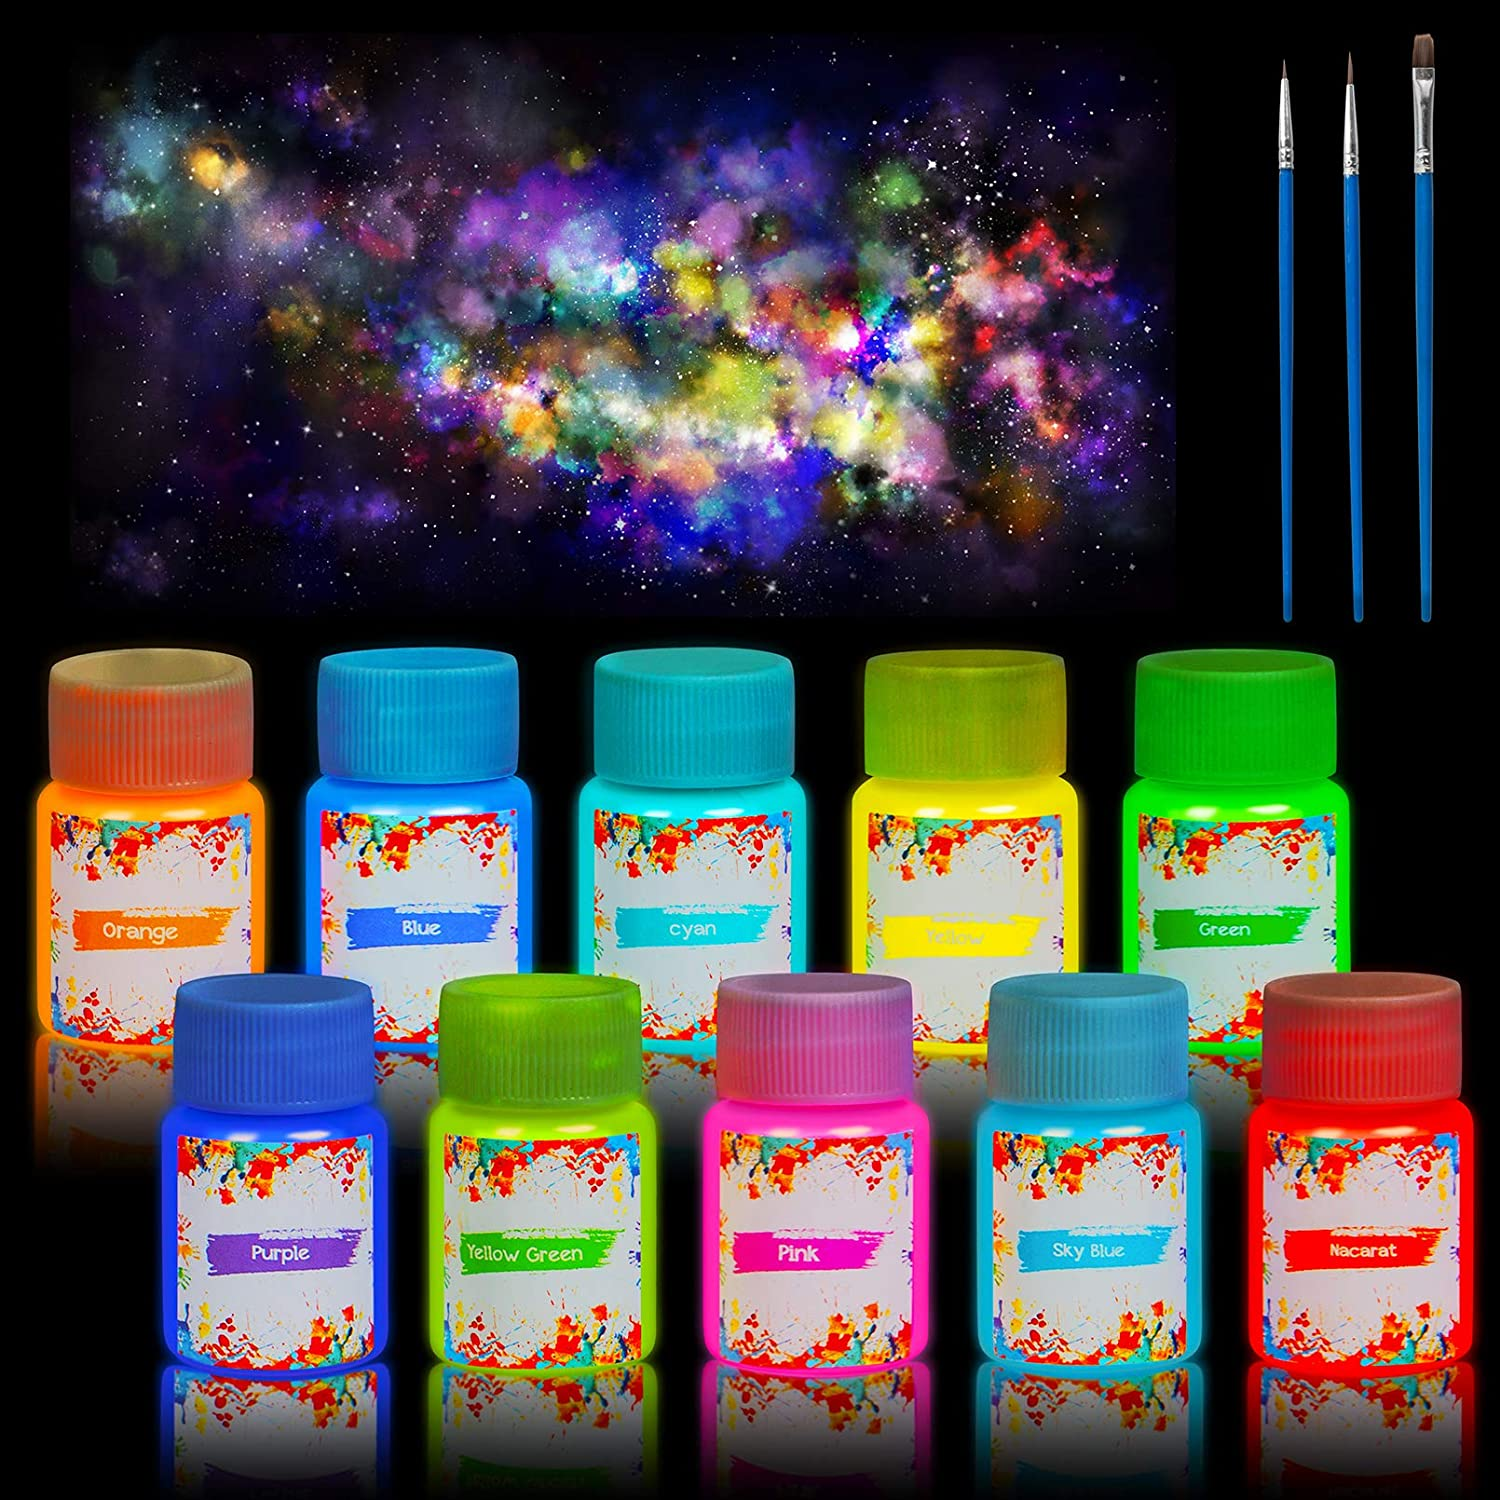 10 Color Glow in The Dark Paint, Self-Luminous Acrylic Paint Set, Long Lasting Phosphorescent Paints with 3 Extra Paint Brushes, Safe for Skin